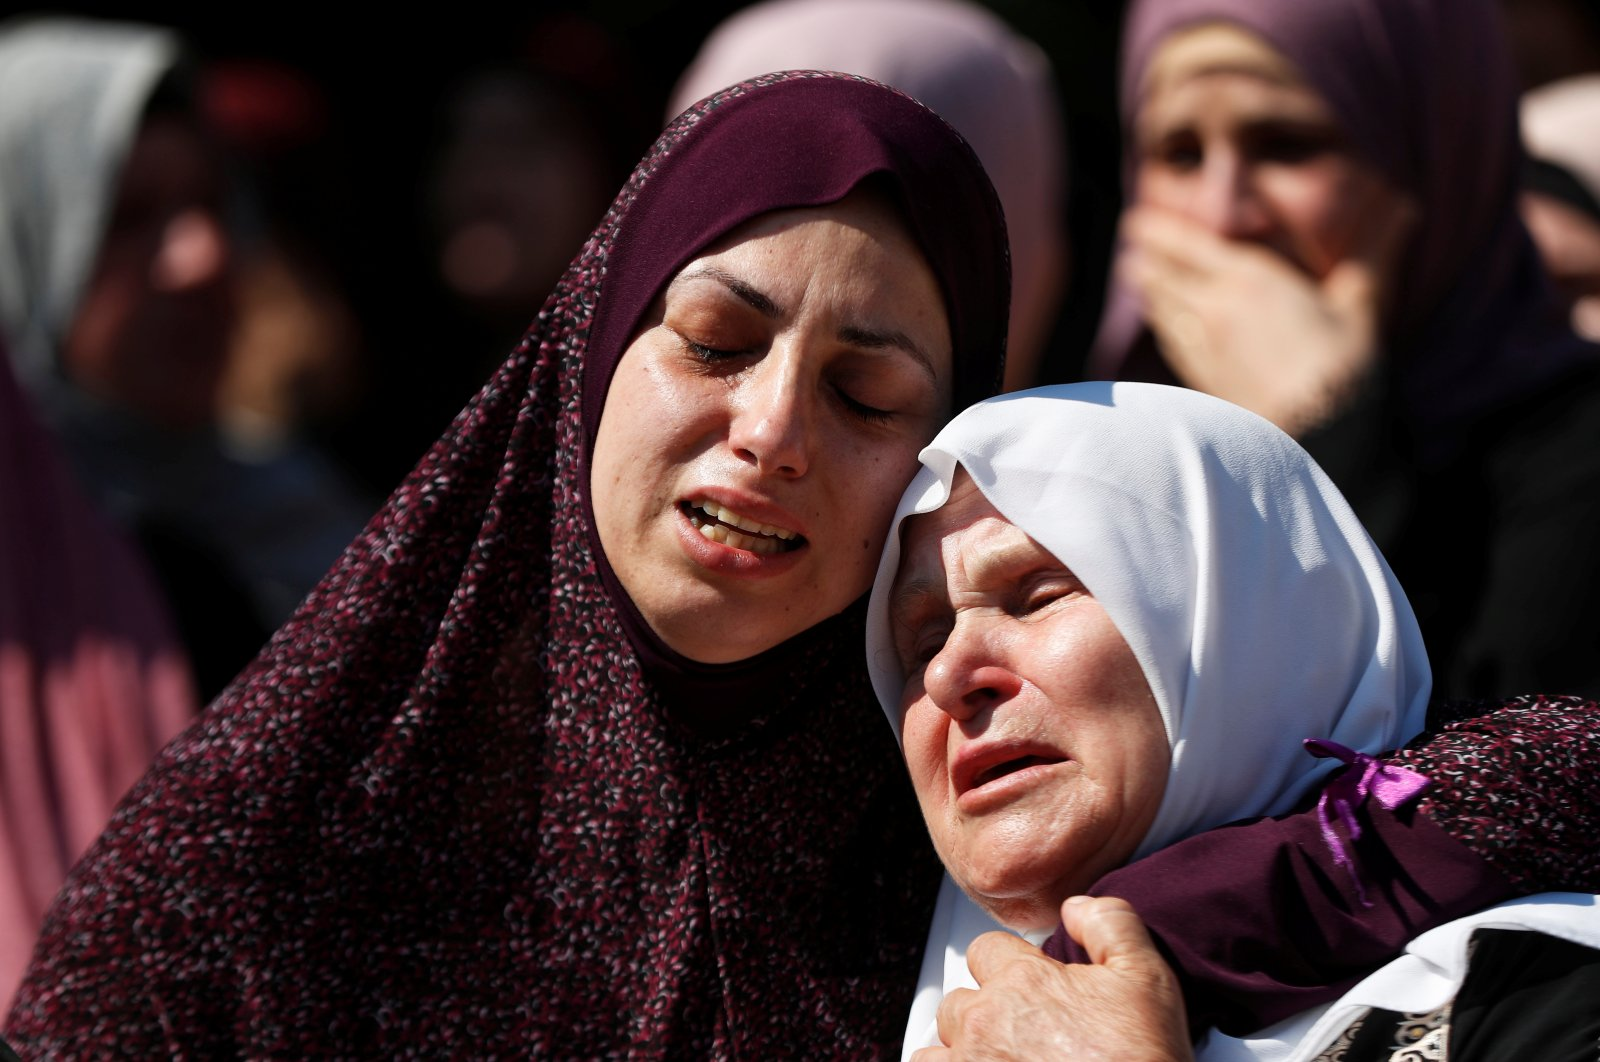 Relatives of Palestinian Dalia Smoudi, 23, mourn during her funeral in Jenin in the Israeli-occupied West Bank, Palestine, Aug. 7, 2020. (Reuters Photo)